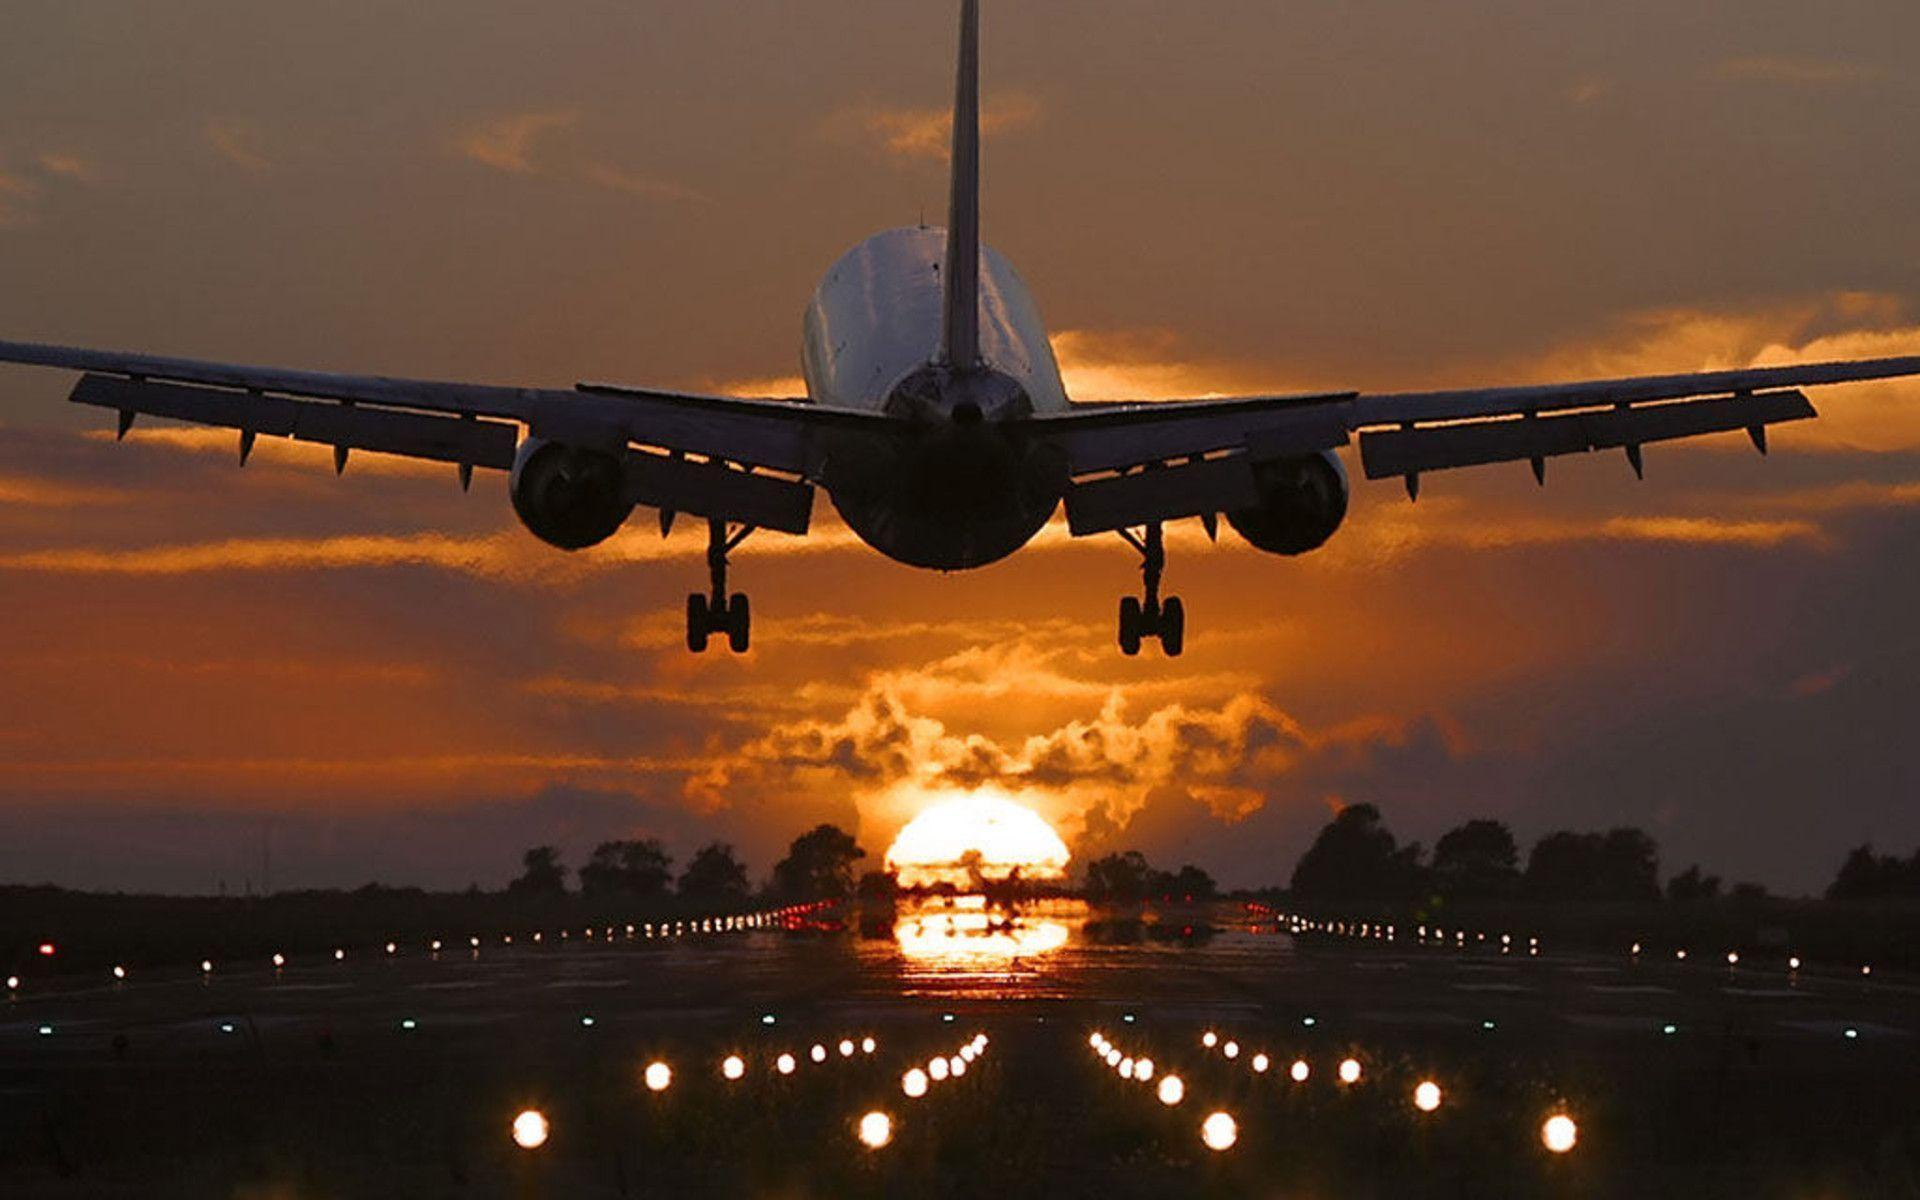 Plane Wallpapers Image Group